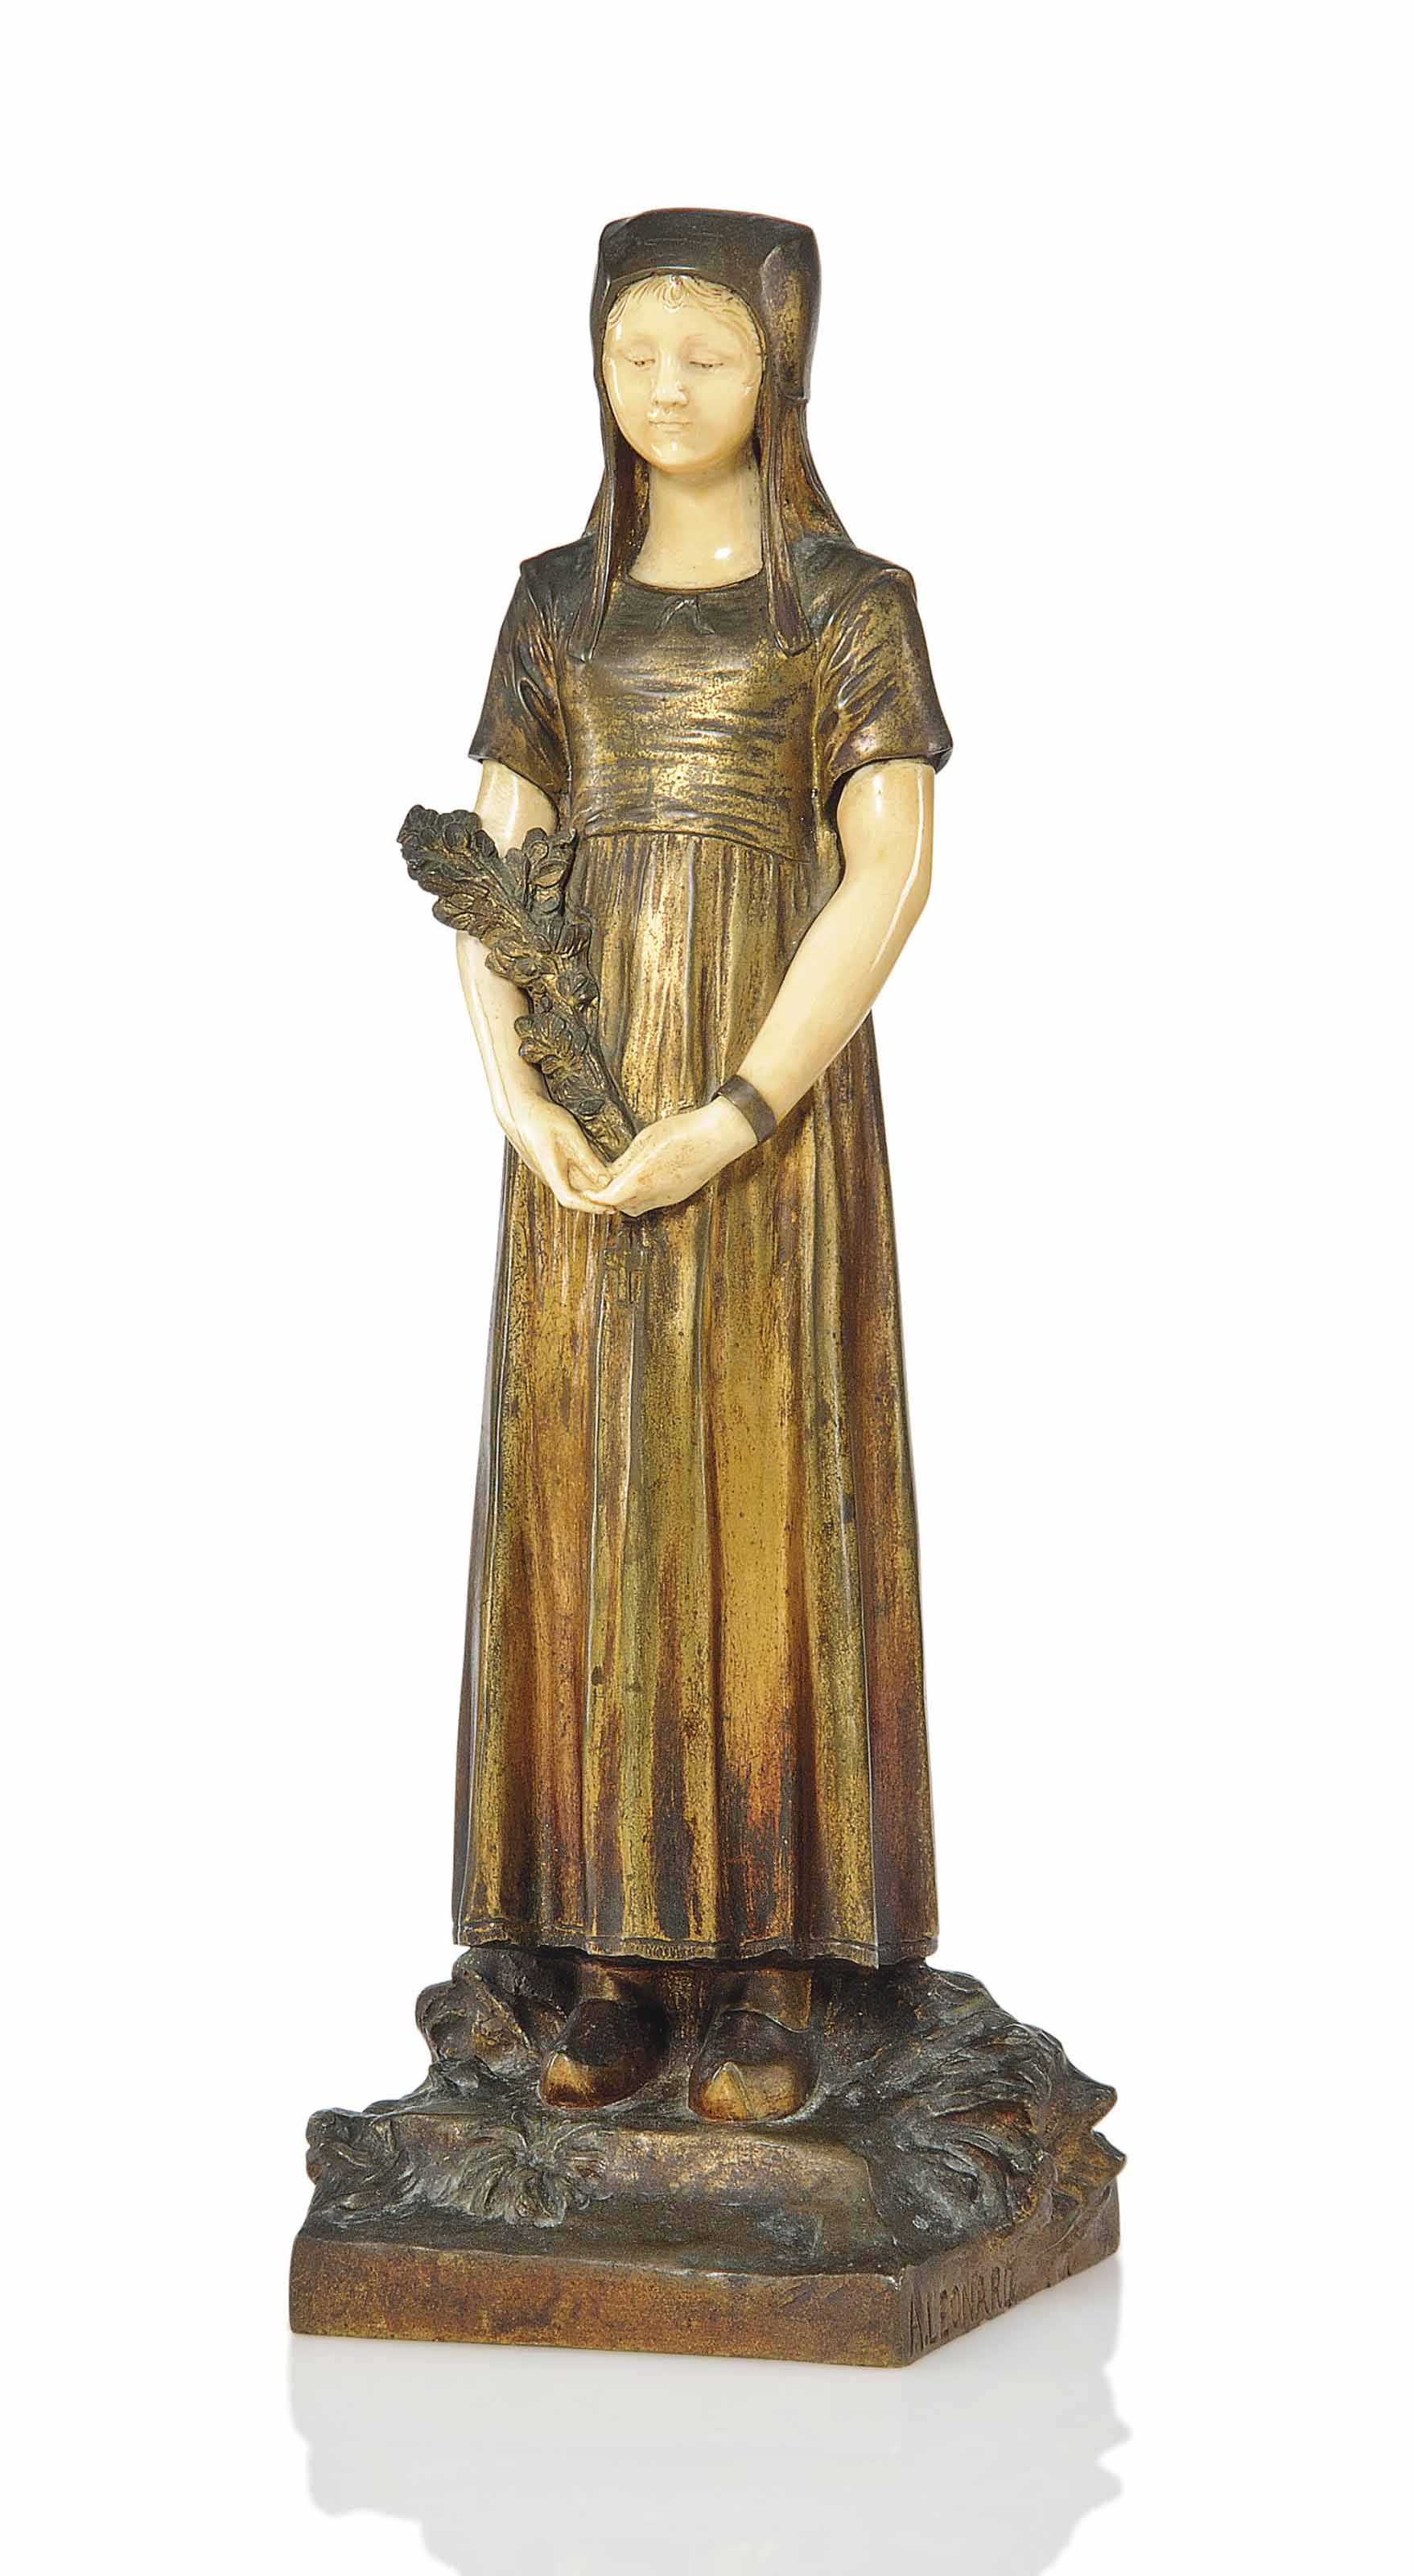 A FRENCH GILT AND PATINATED-BRONZE AND IVORY FIGURE OF A MAIDEN